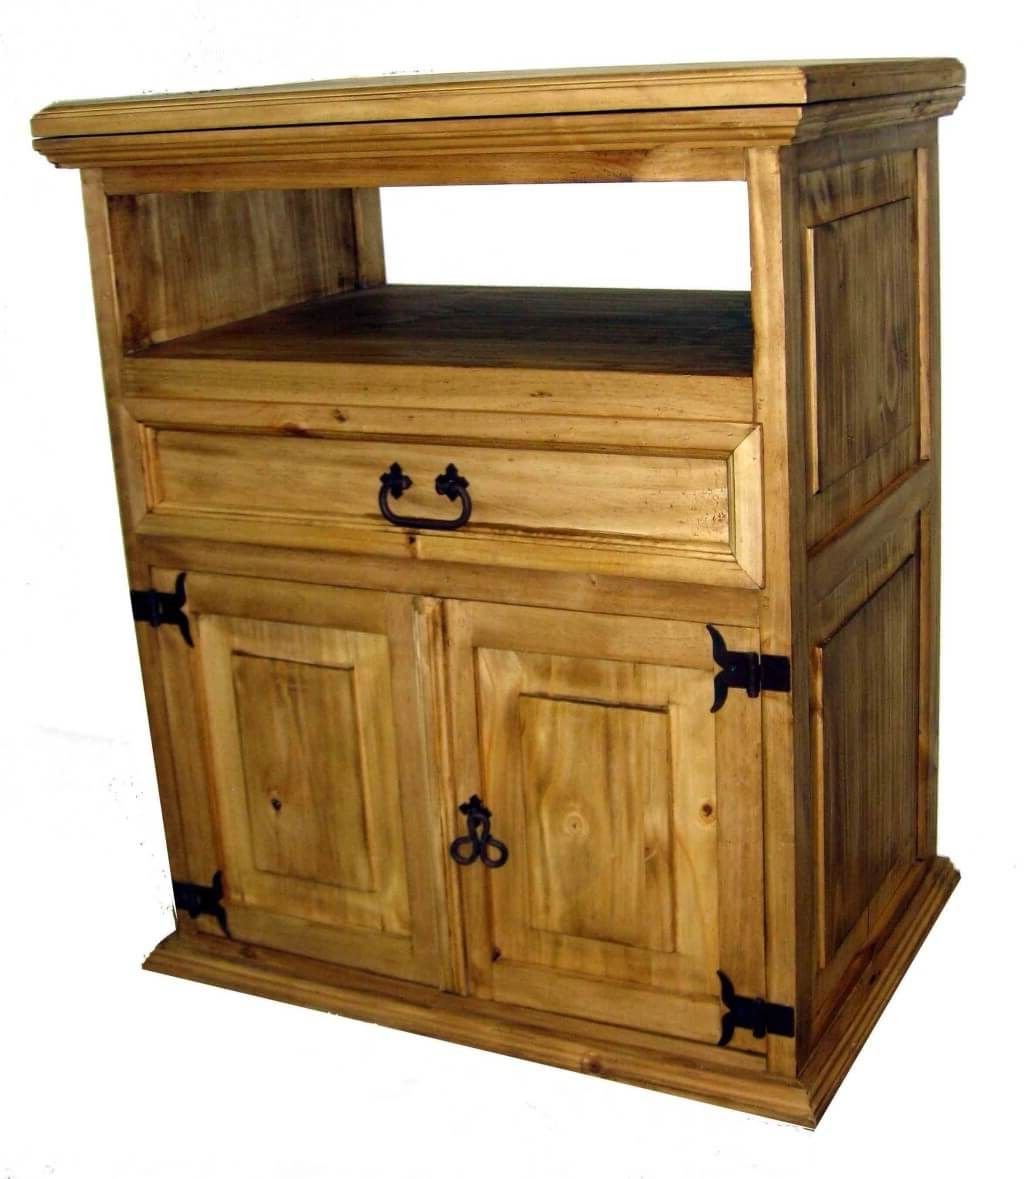 Popular Cheap Rustic Tv Stands Intended For Furniture: Classic Cheap Rustic Tv Stand Featuring Double Door (View 14 of 20)